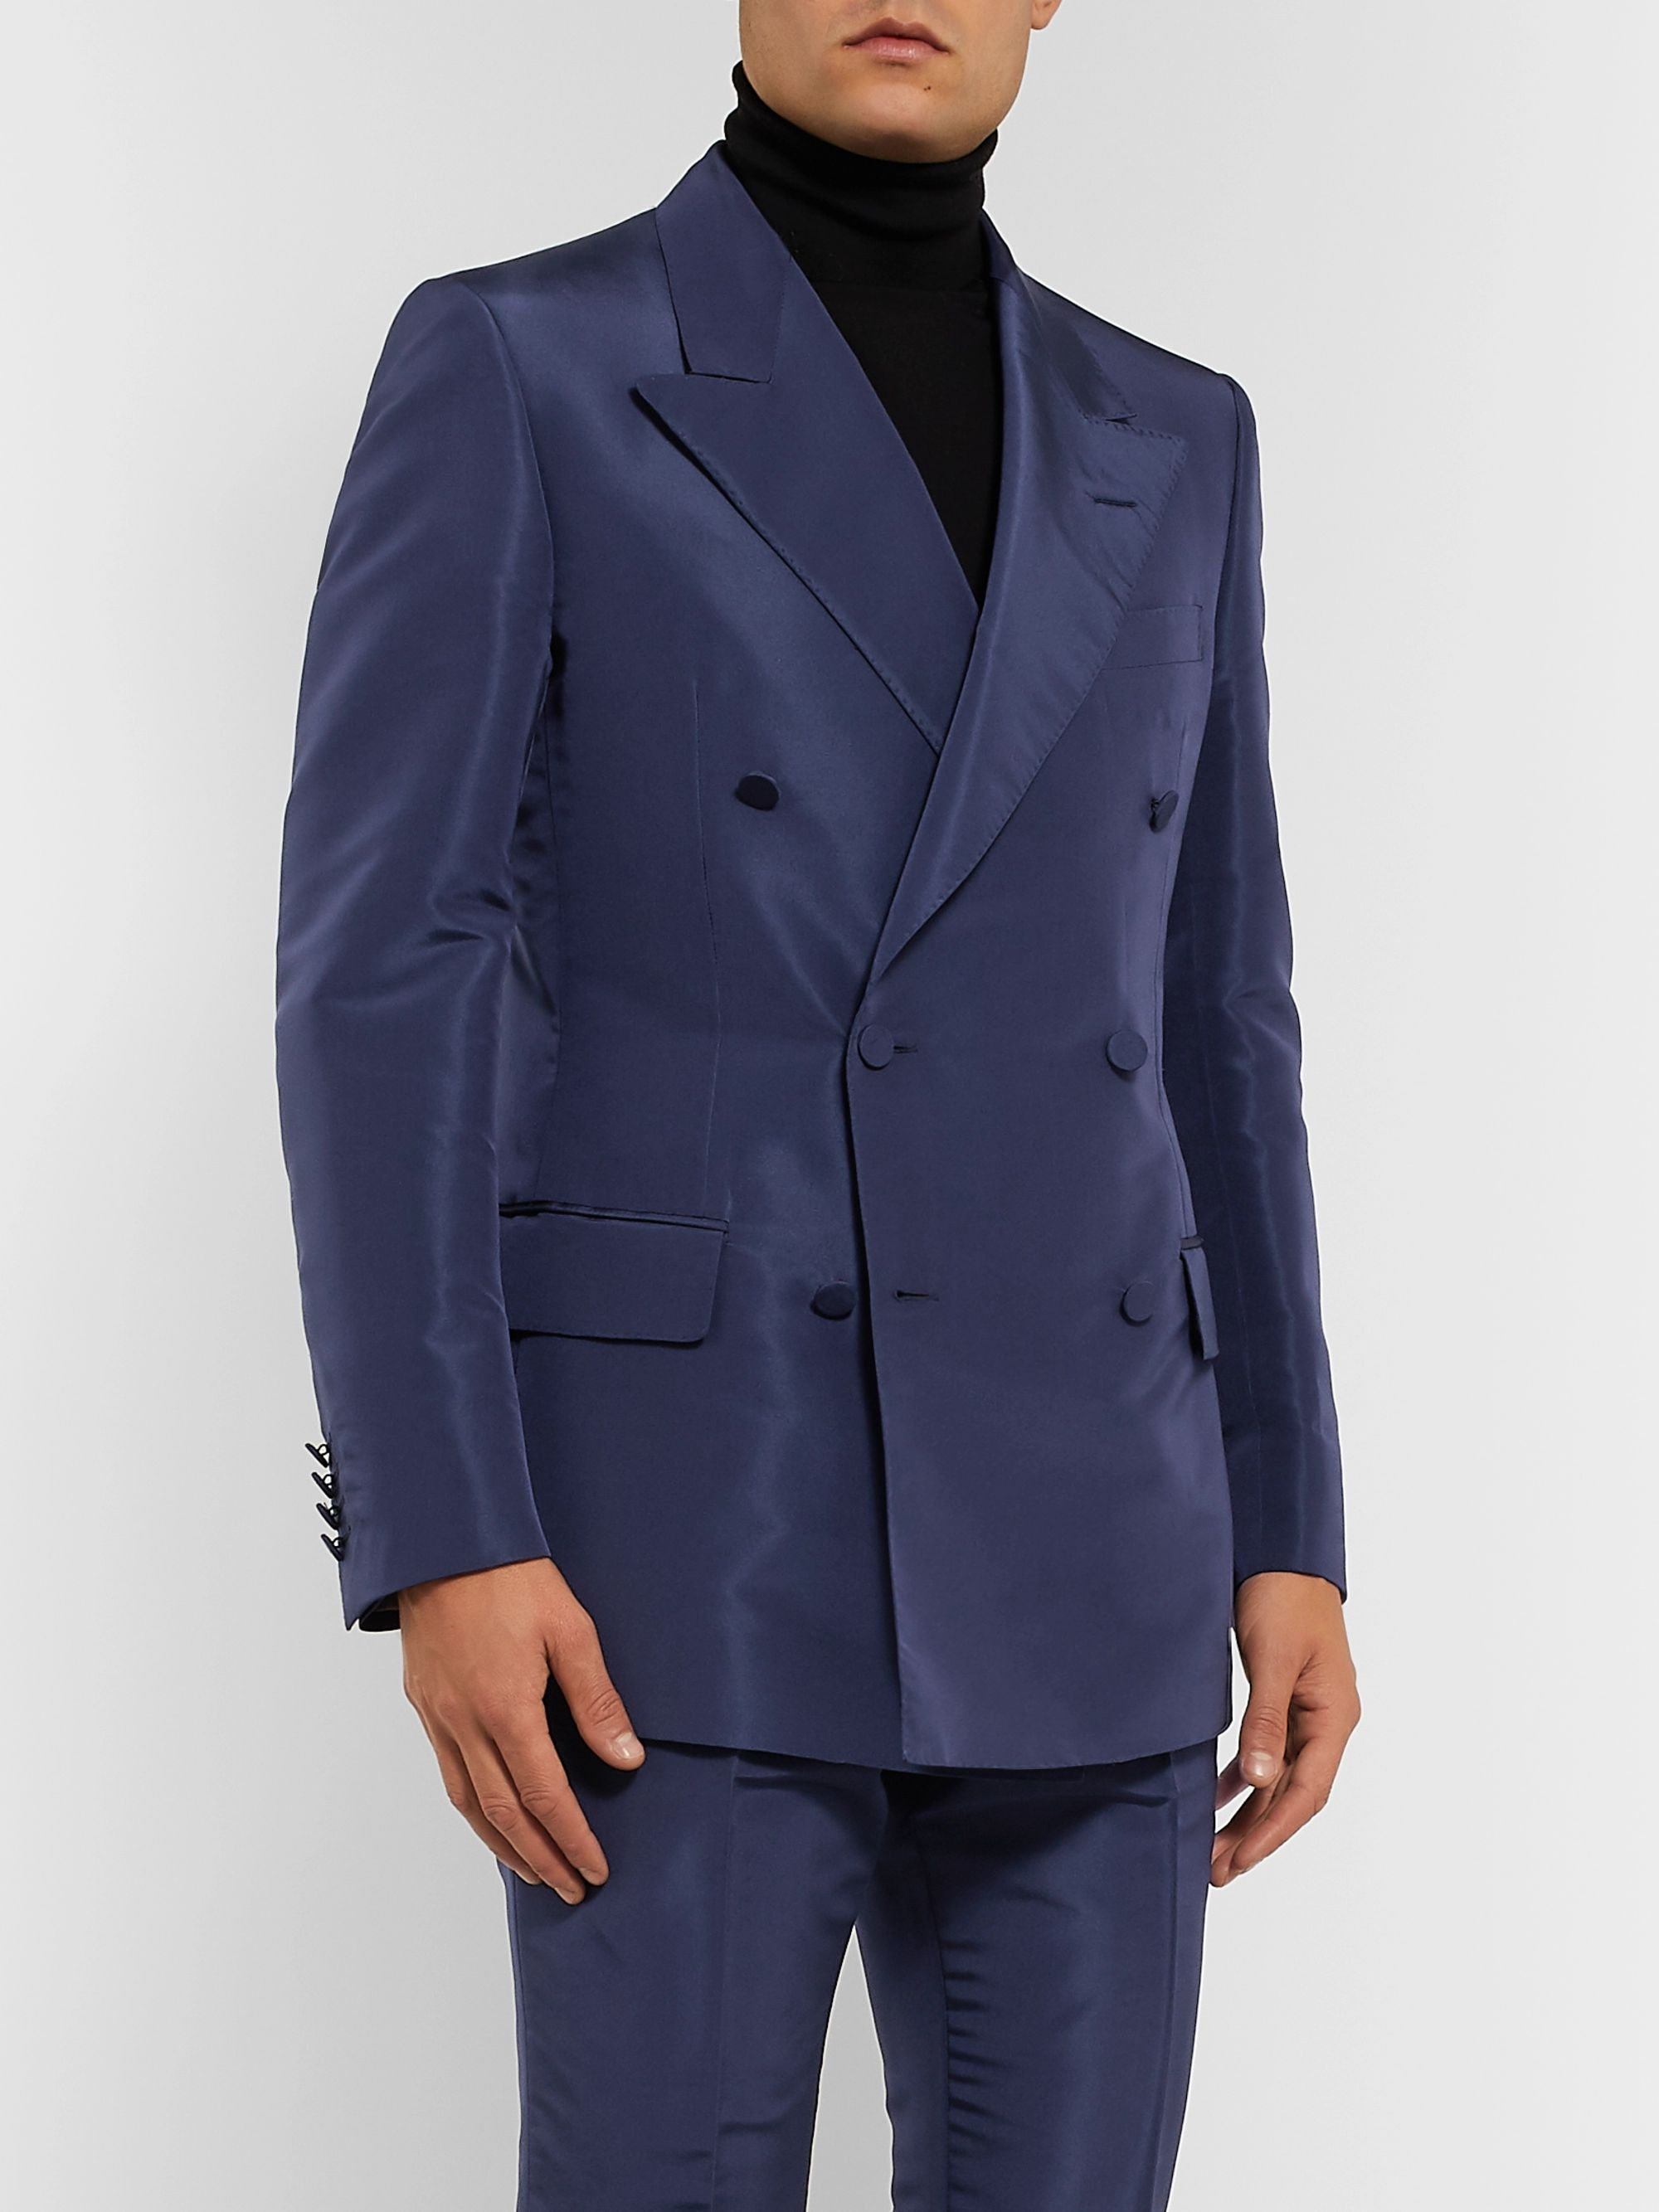 Dunhill Navy Slim-Fit Double-Breasted Mulberry Silk Suit Jacket